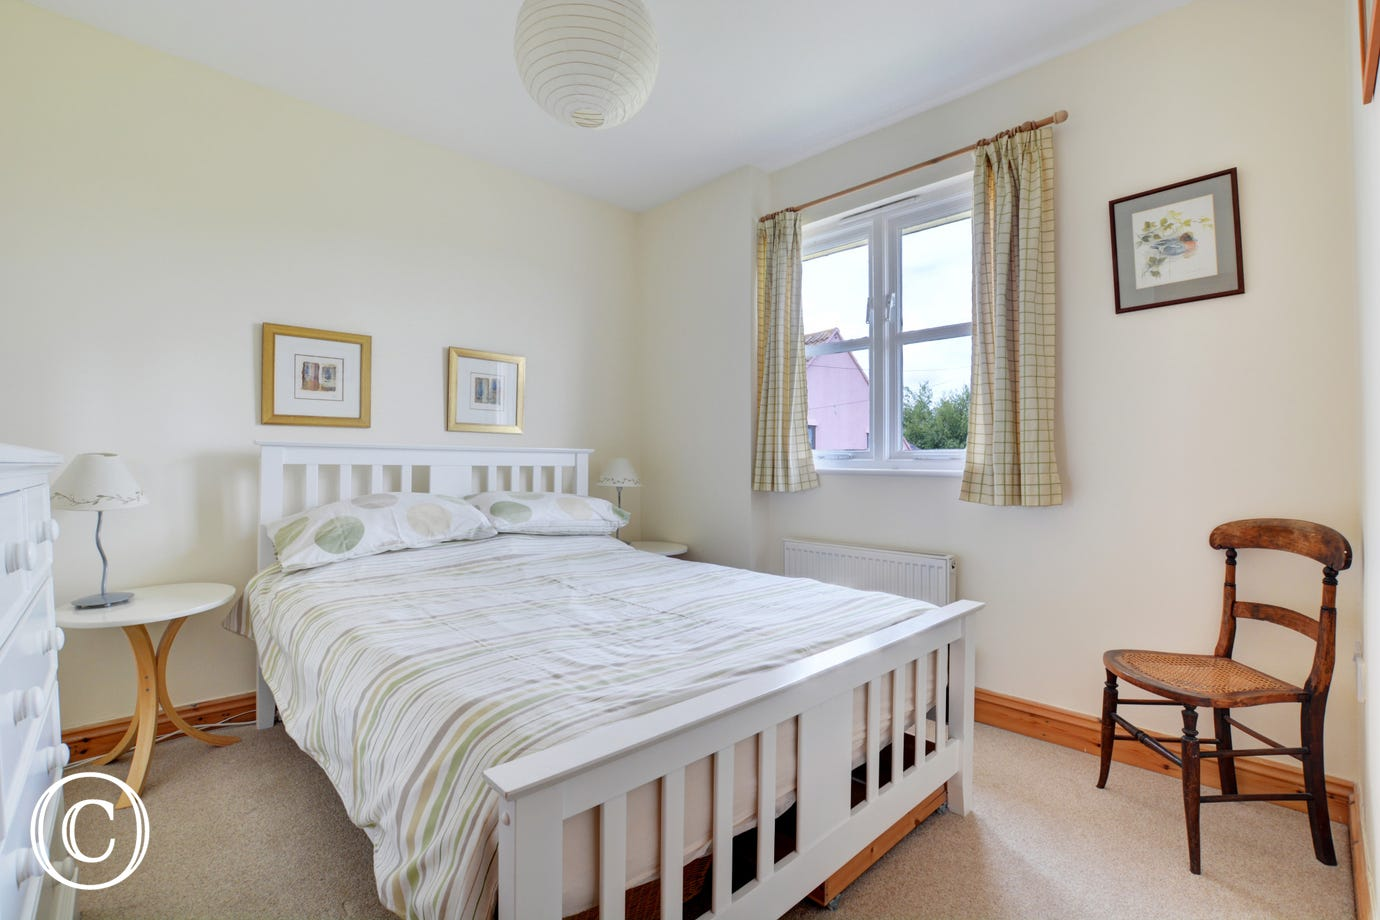 Clasically furnished double bedroom with a double bed